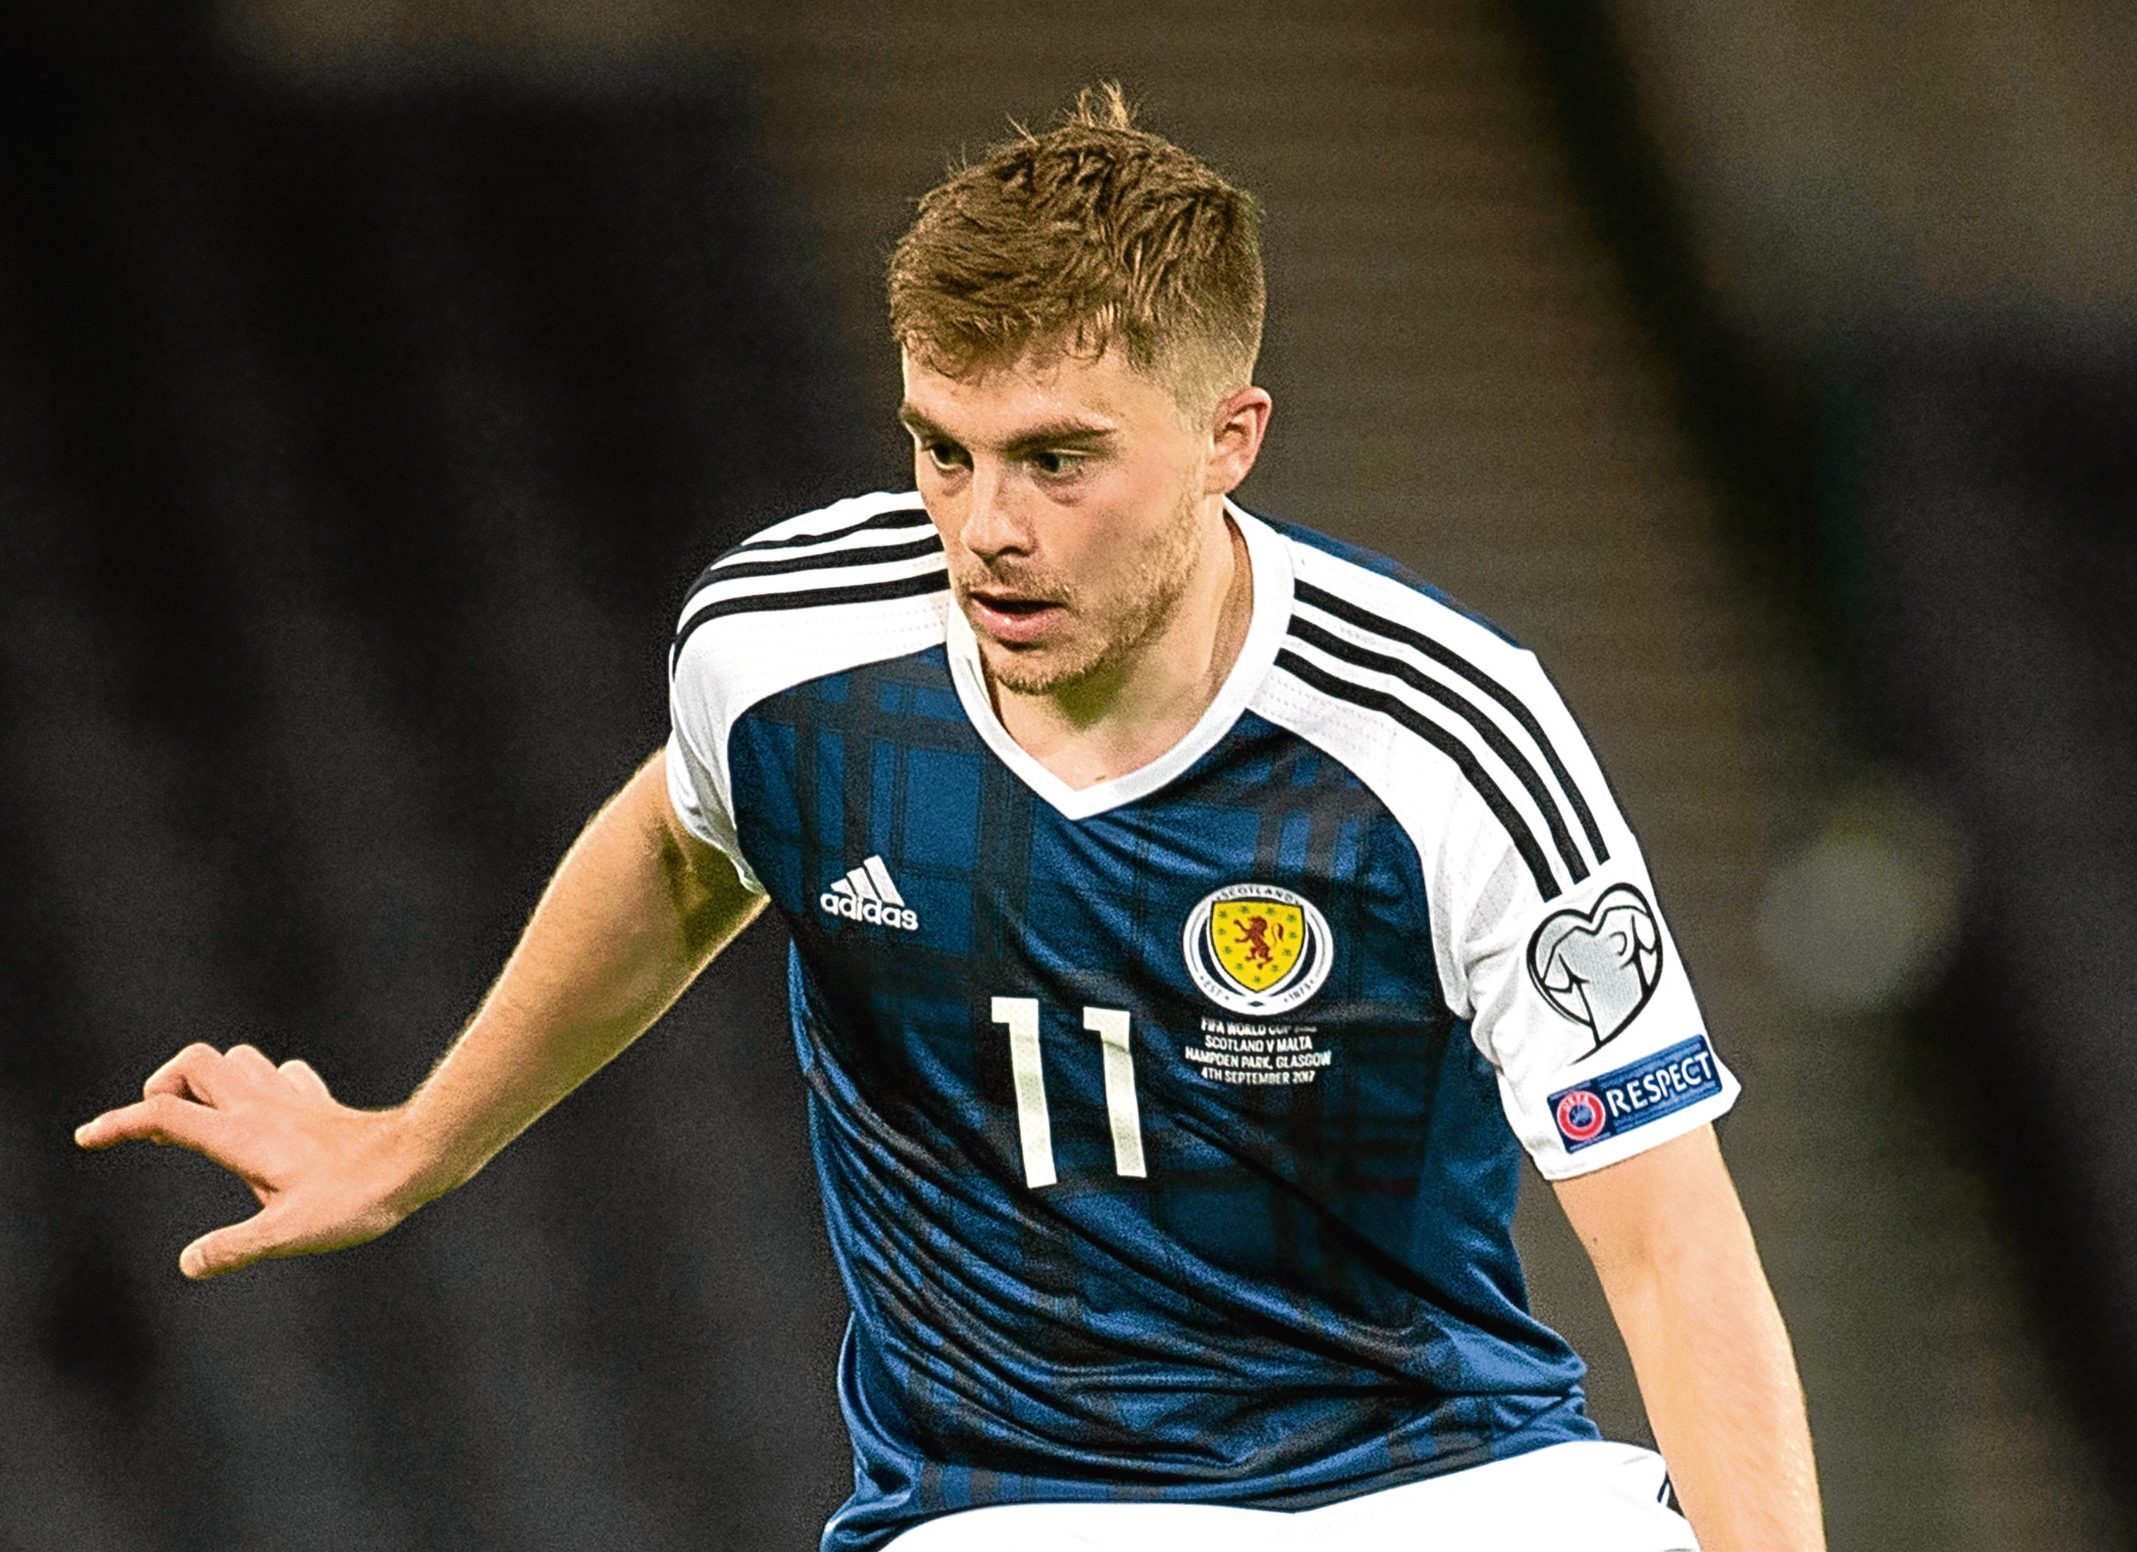 James Forrest in action for Scotland.